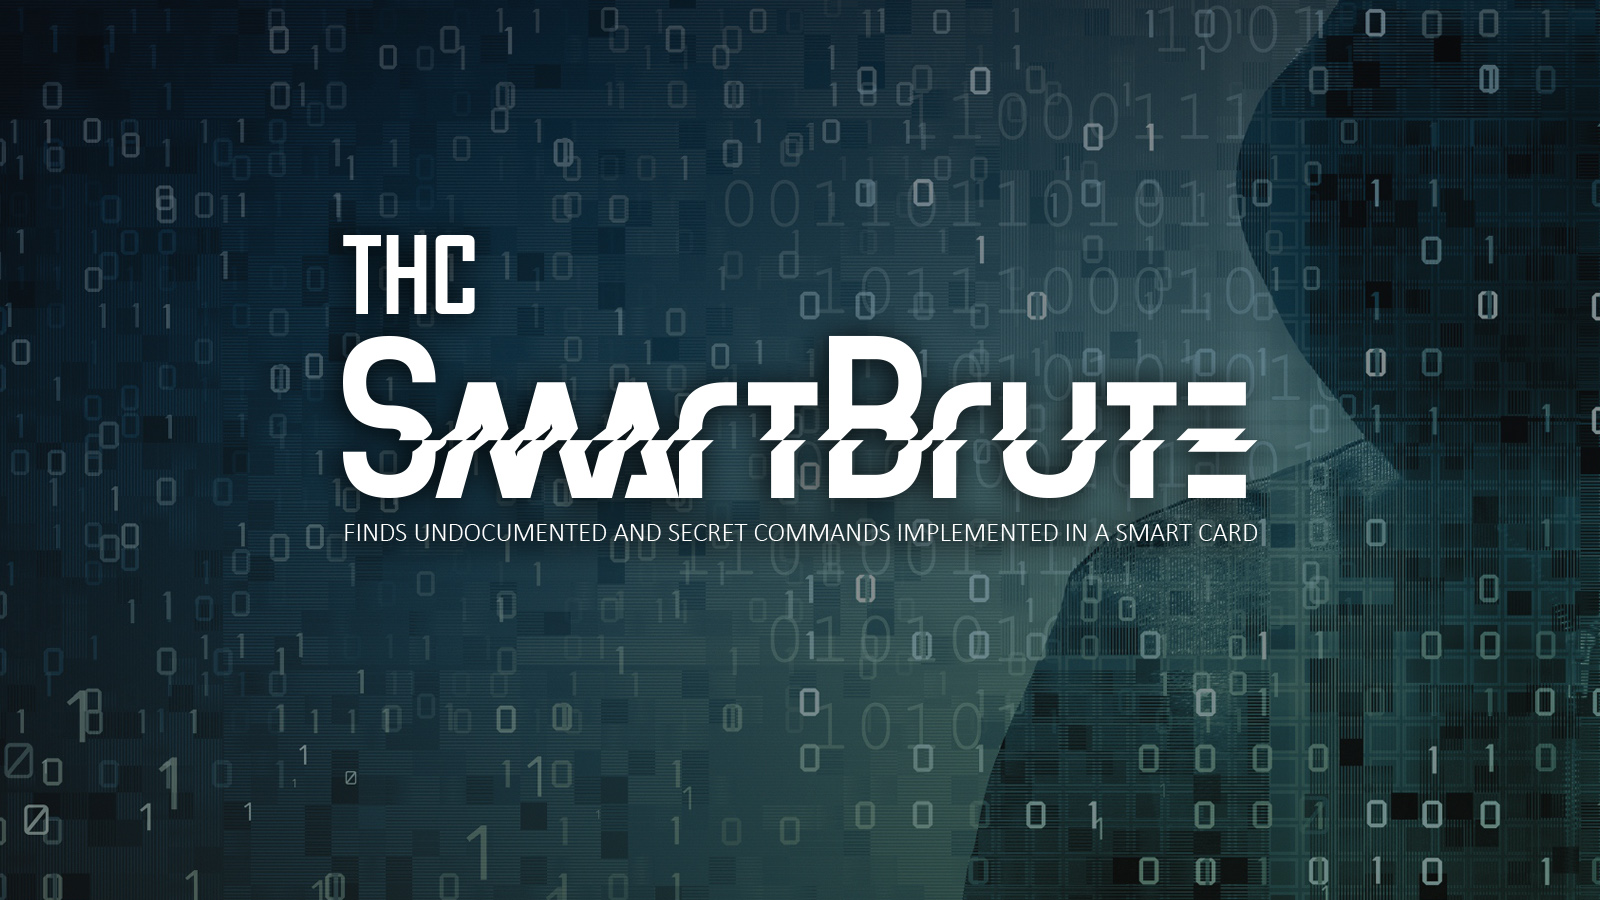 THC-SmartBrute - Finds Undocumented and Secret Commands Implemented In a Smart Card